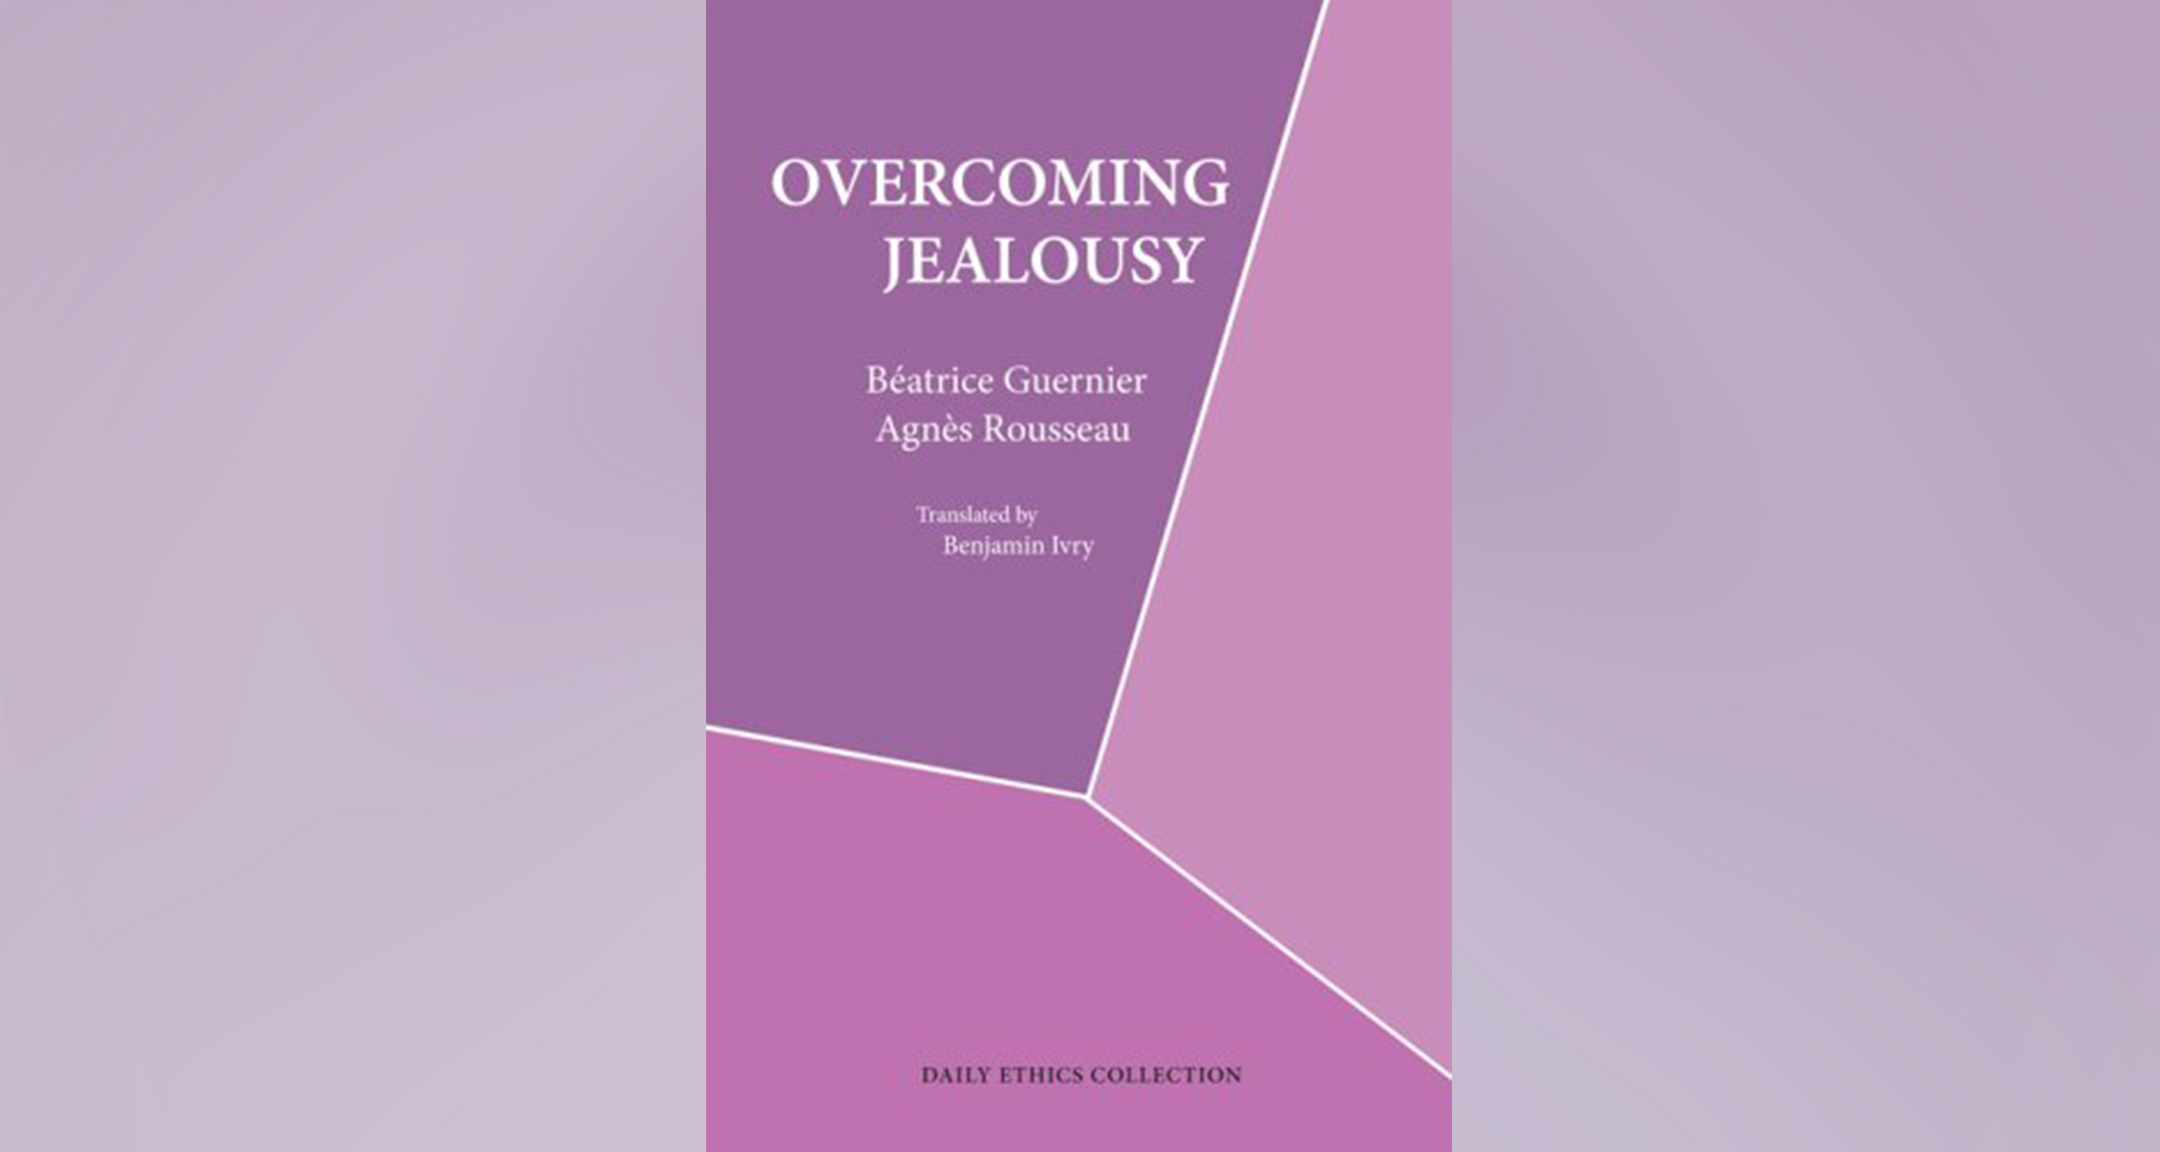 overcoming jealousy excerpt e ostadelahi com overcoming jealousy